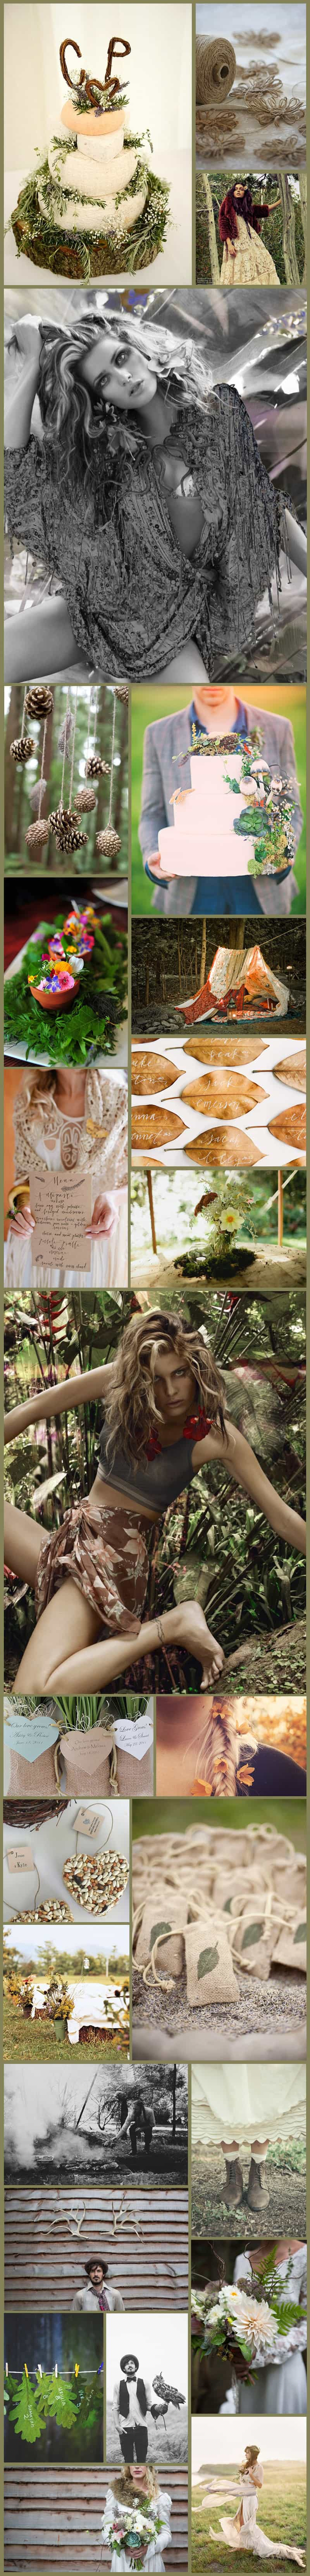 Eco Warrior Princess Inspiration Board